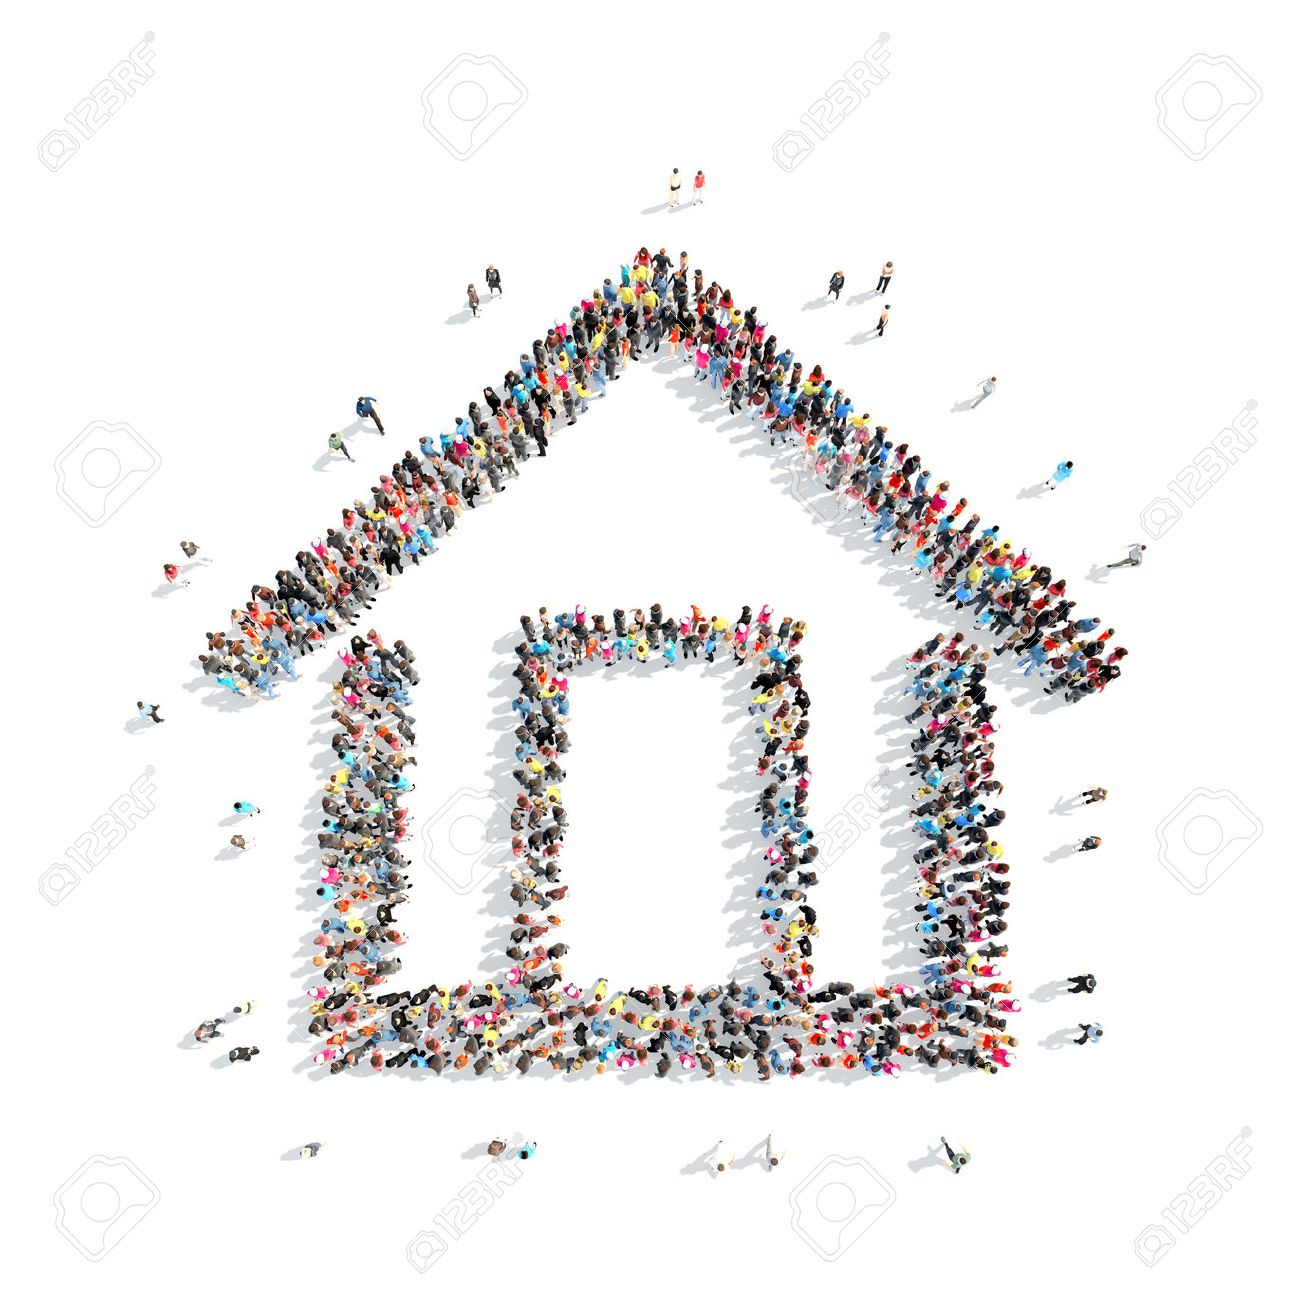 A large group of people in the shape of a house. Isolated, on a white background. - 41244137